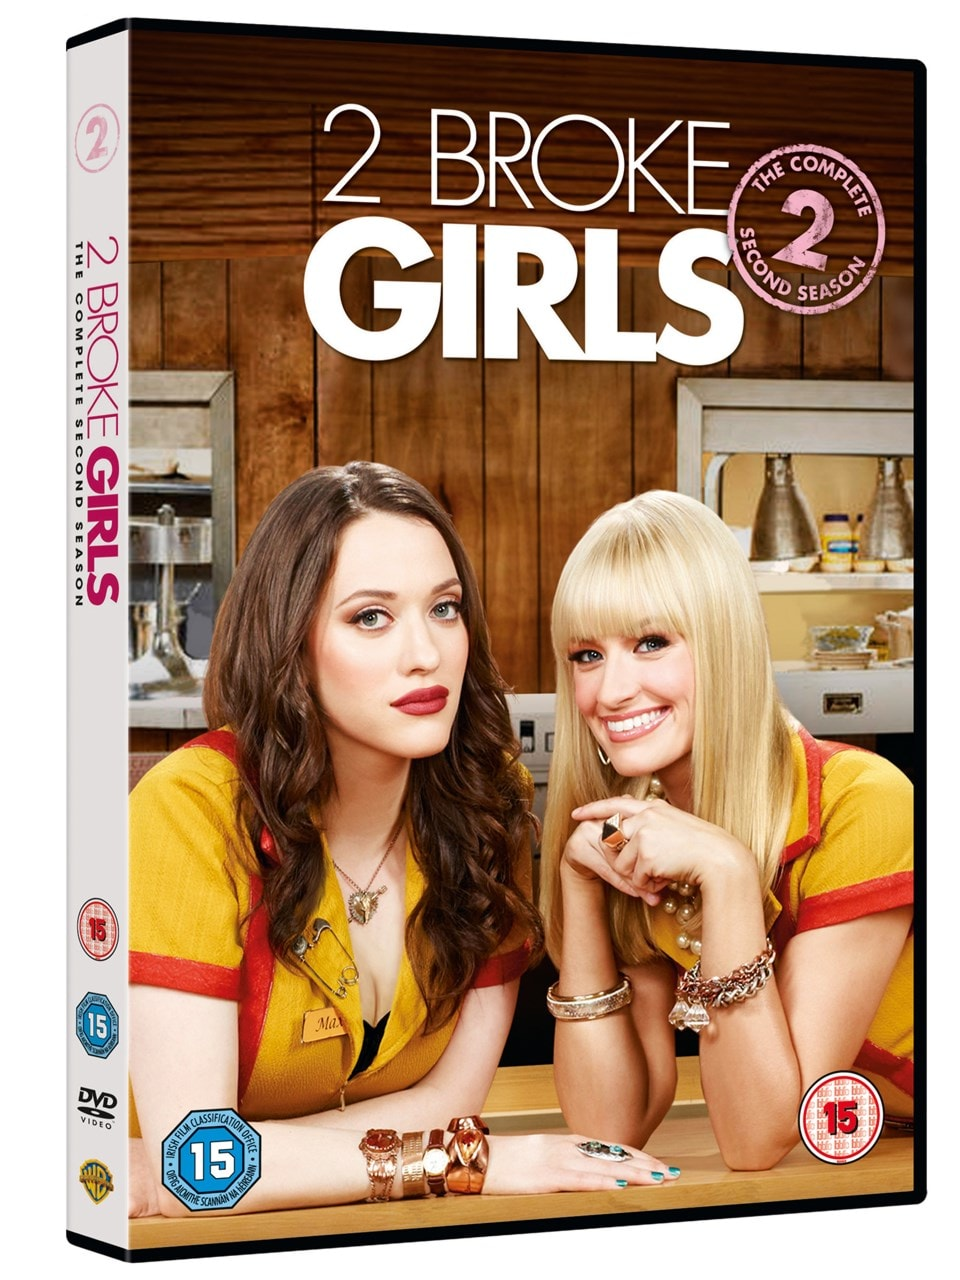 2 Broke Girls: The Complete Second Season - 2